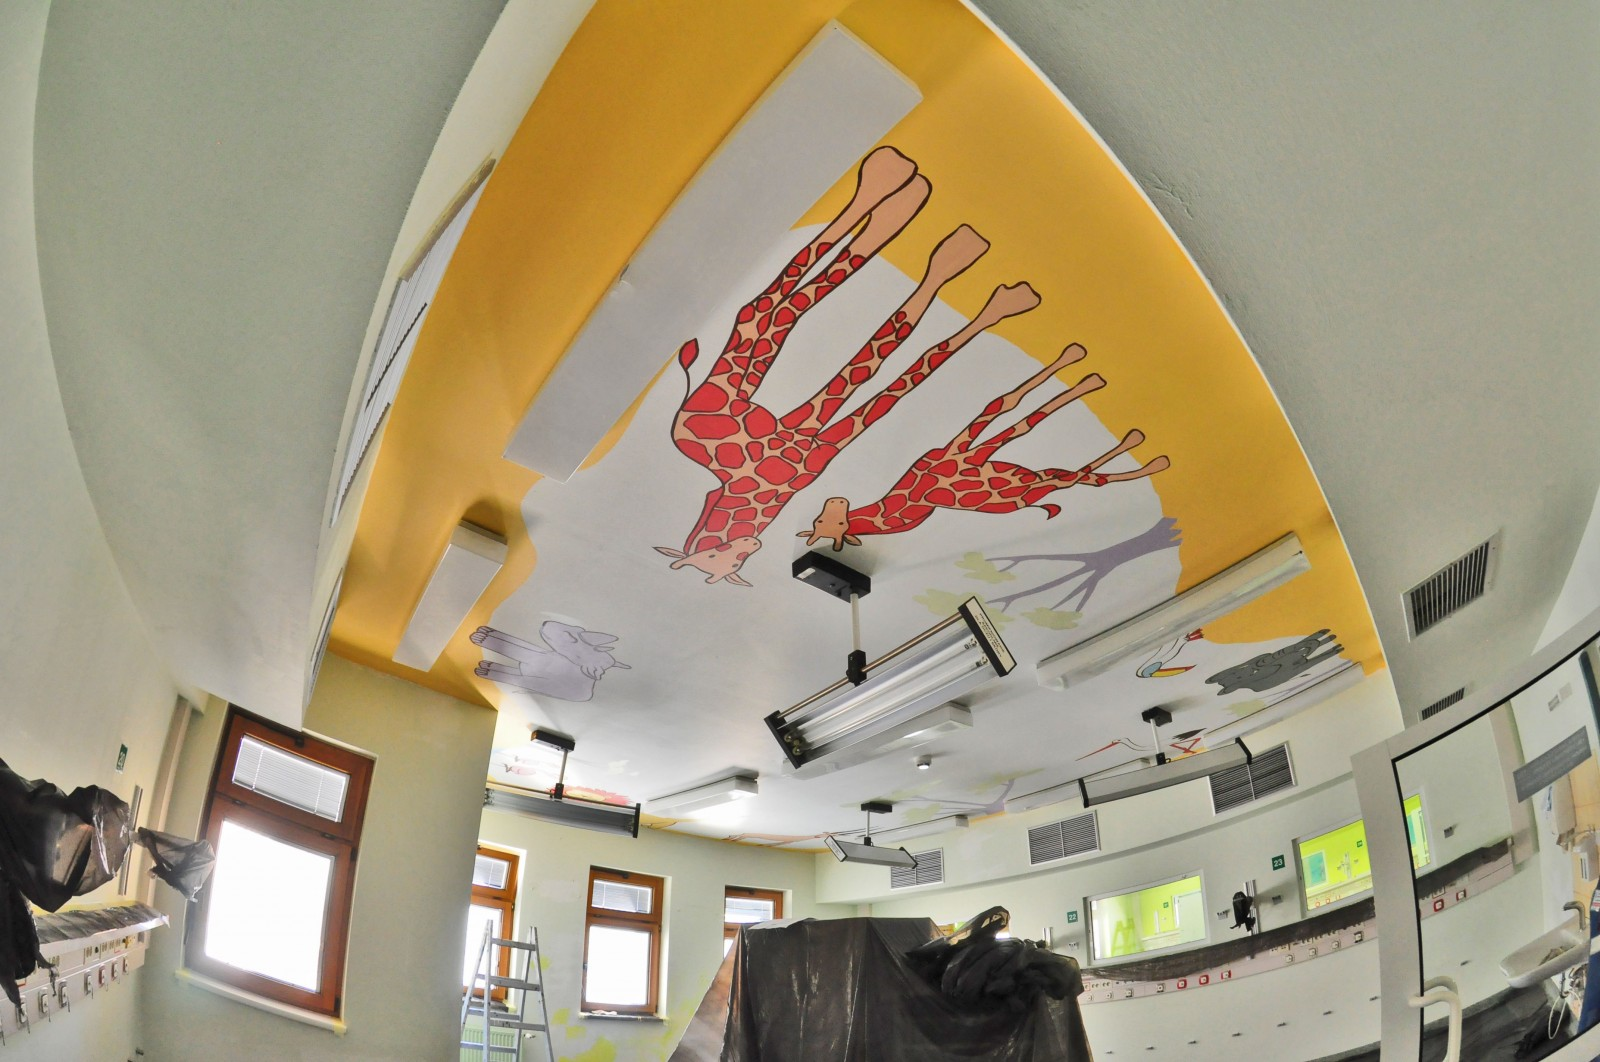 Dulux Ceiling Operation - The Children's Memorial Health Institute painting | Ceiling Operation - The Children's Memorial Health Institute | CSR | About us